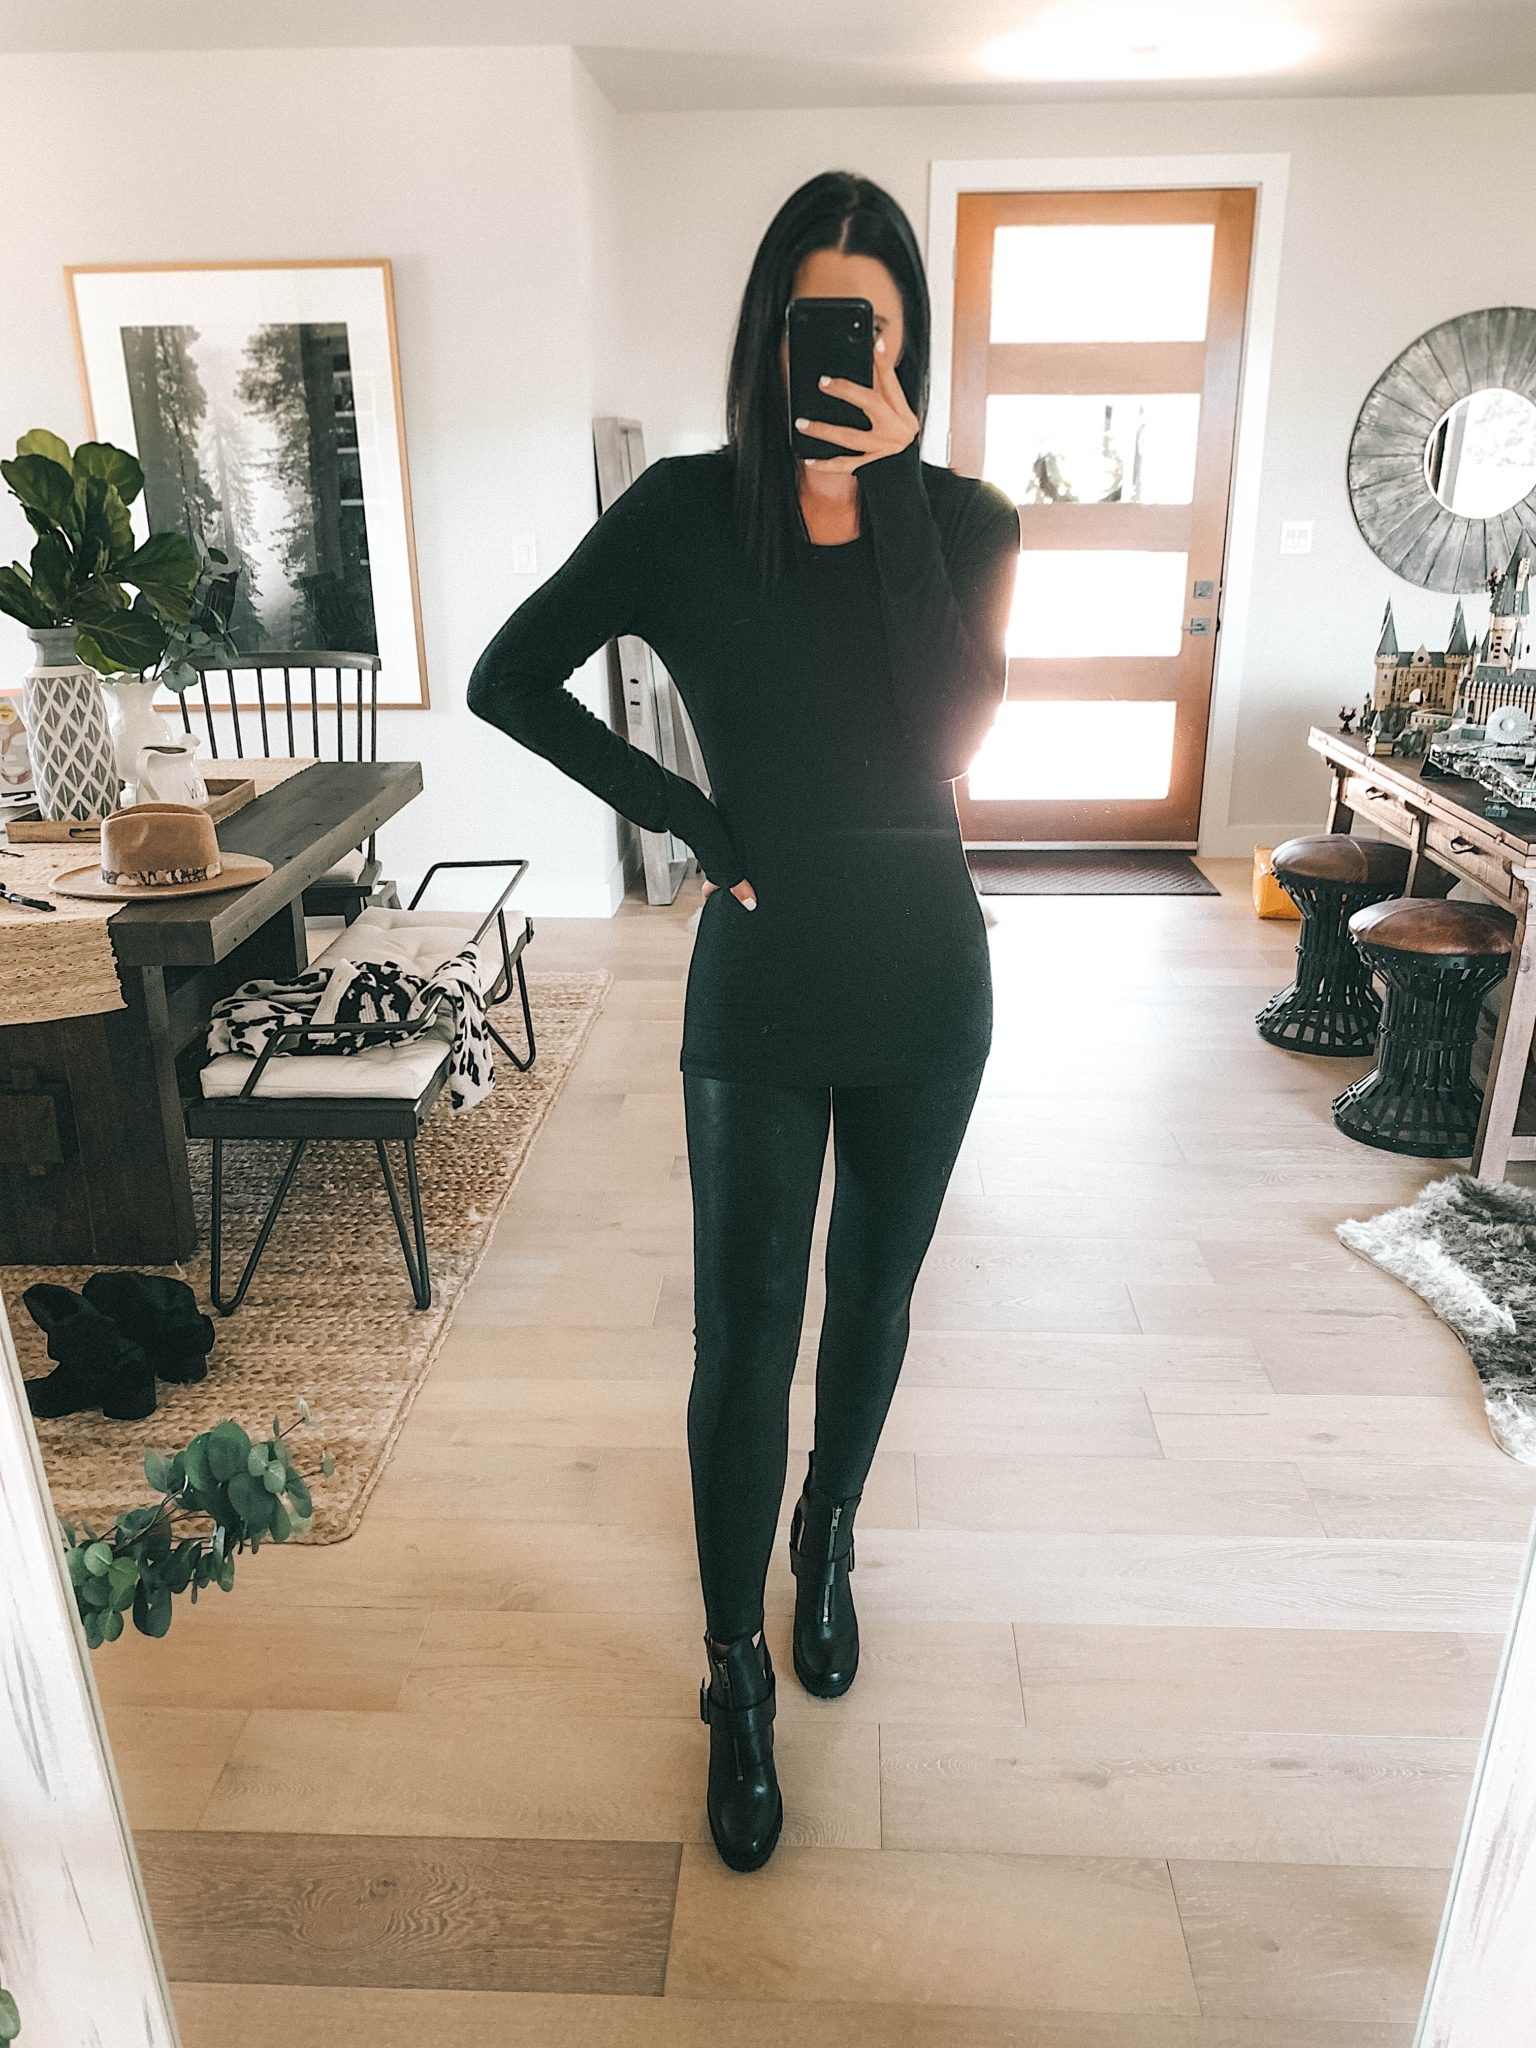 Create a Capsule Wardrobe with Nordstrom Anniversary Sale Pieces by popular Austin fashion blog, Dressed to Kill: image of a woman standing in her house and wearing Steve Madden Black Booties, Spanx Faux Leather Leggings and Nordstrom Signature Cashmere Sweater.